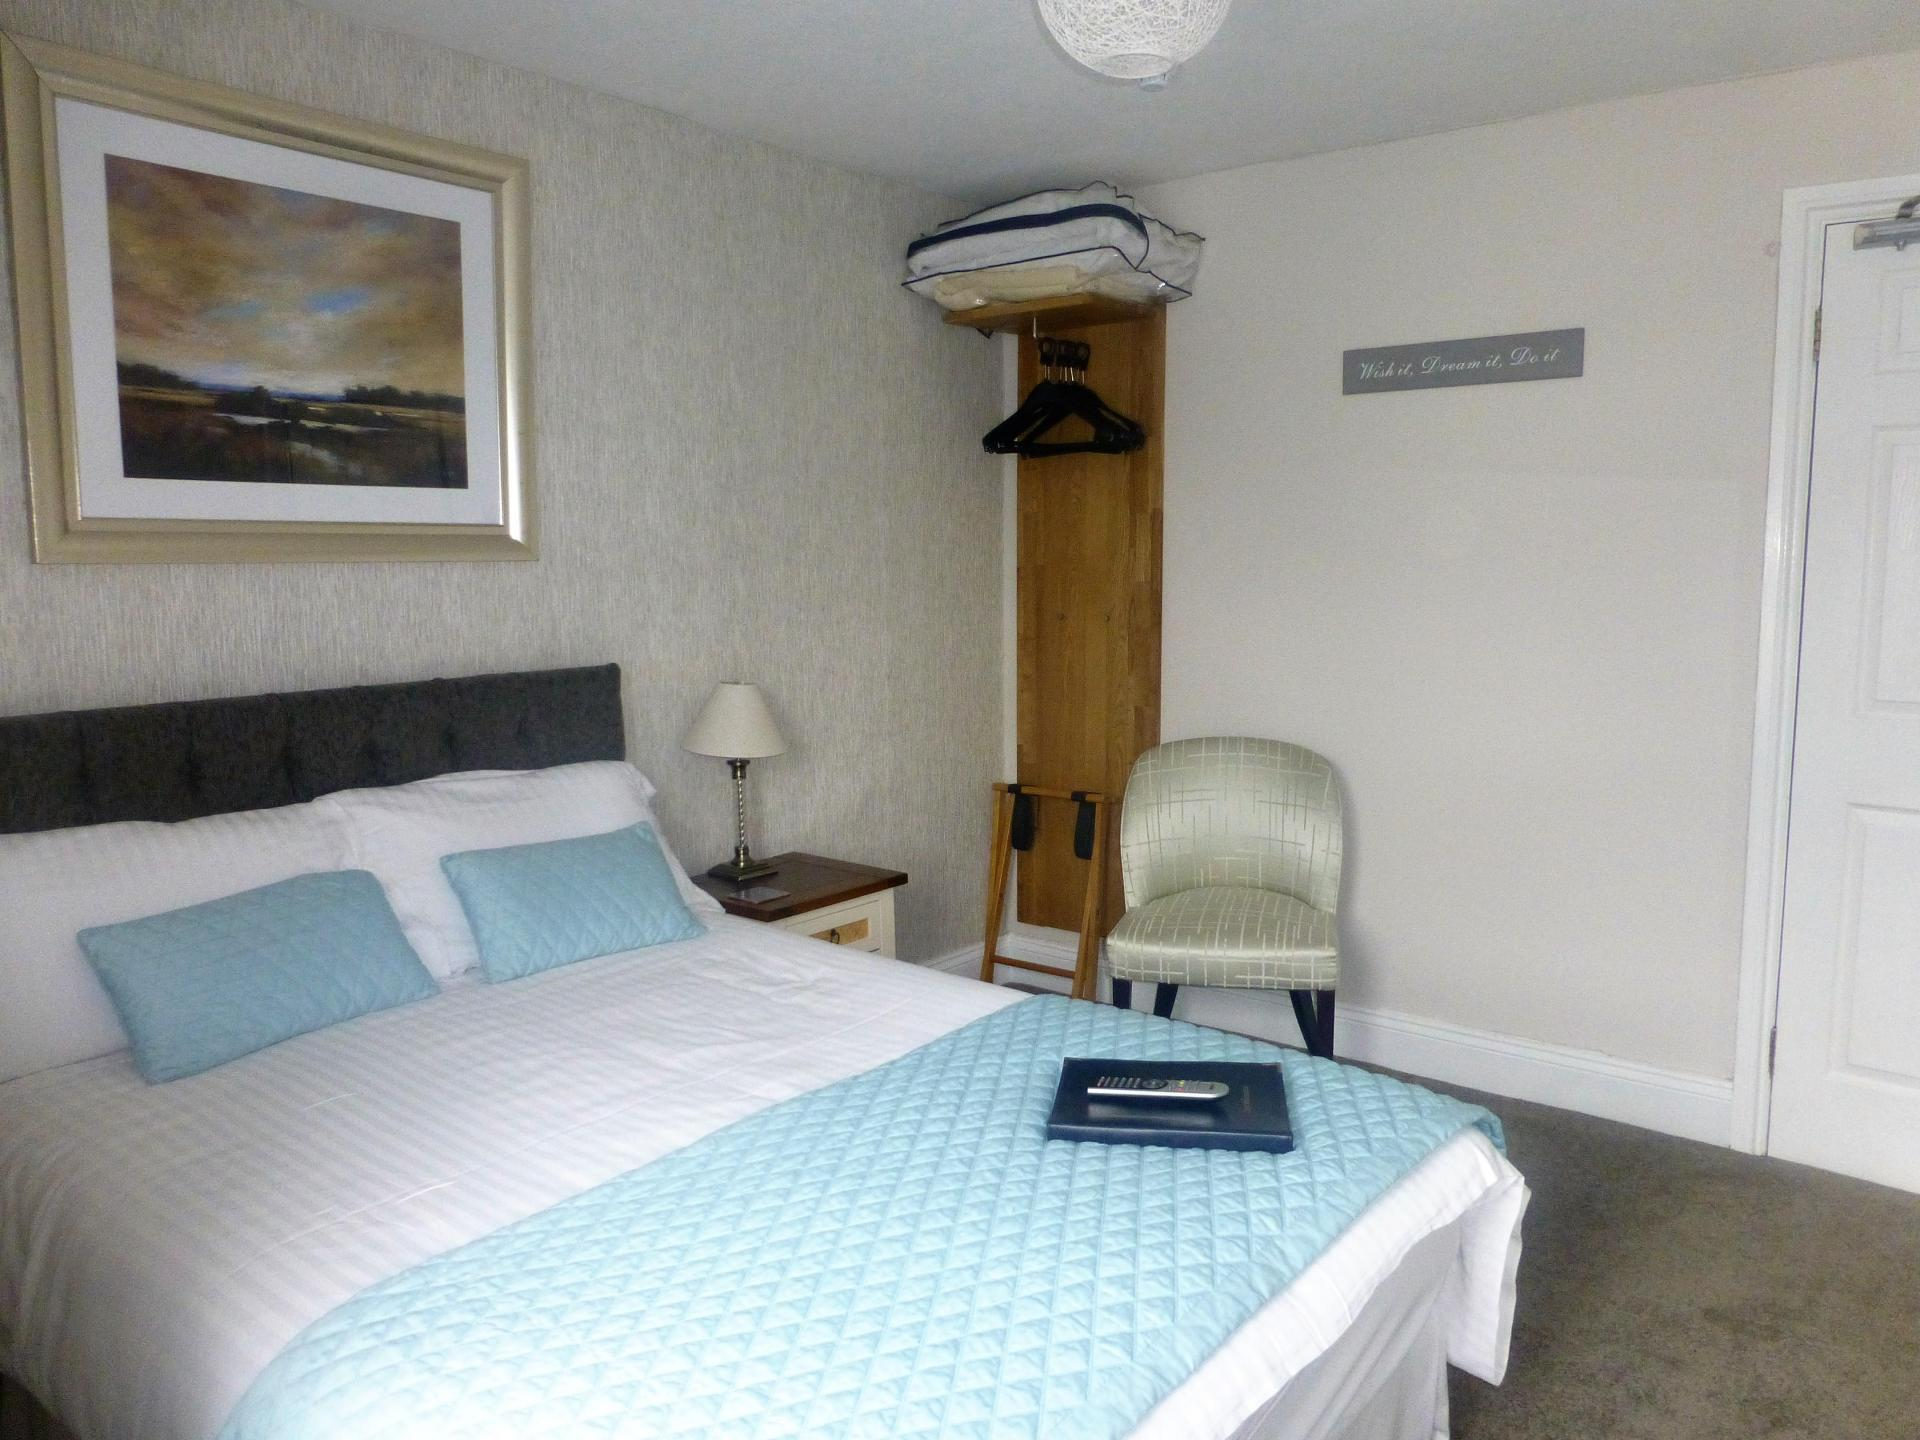 Deluxe Double En-suite (inc Breakfast)